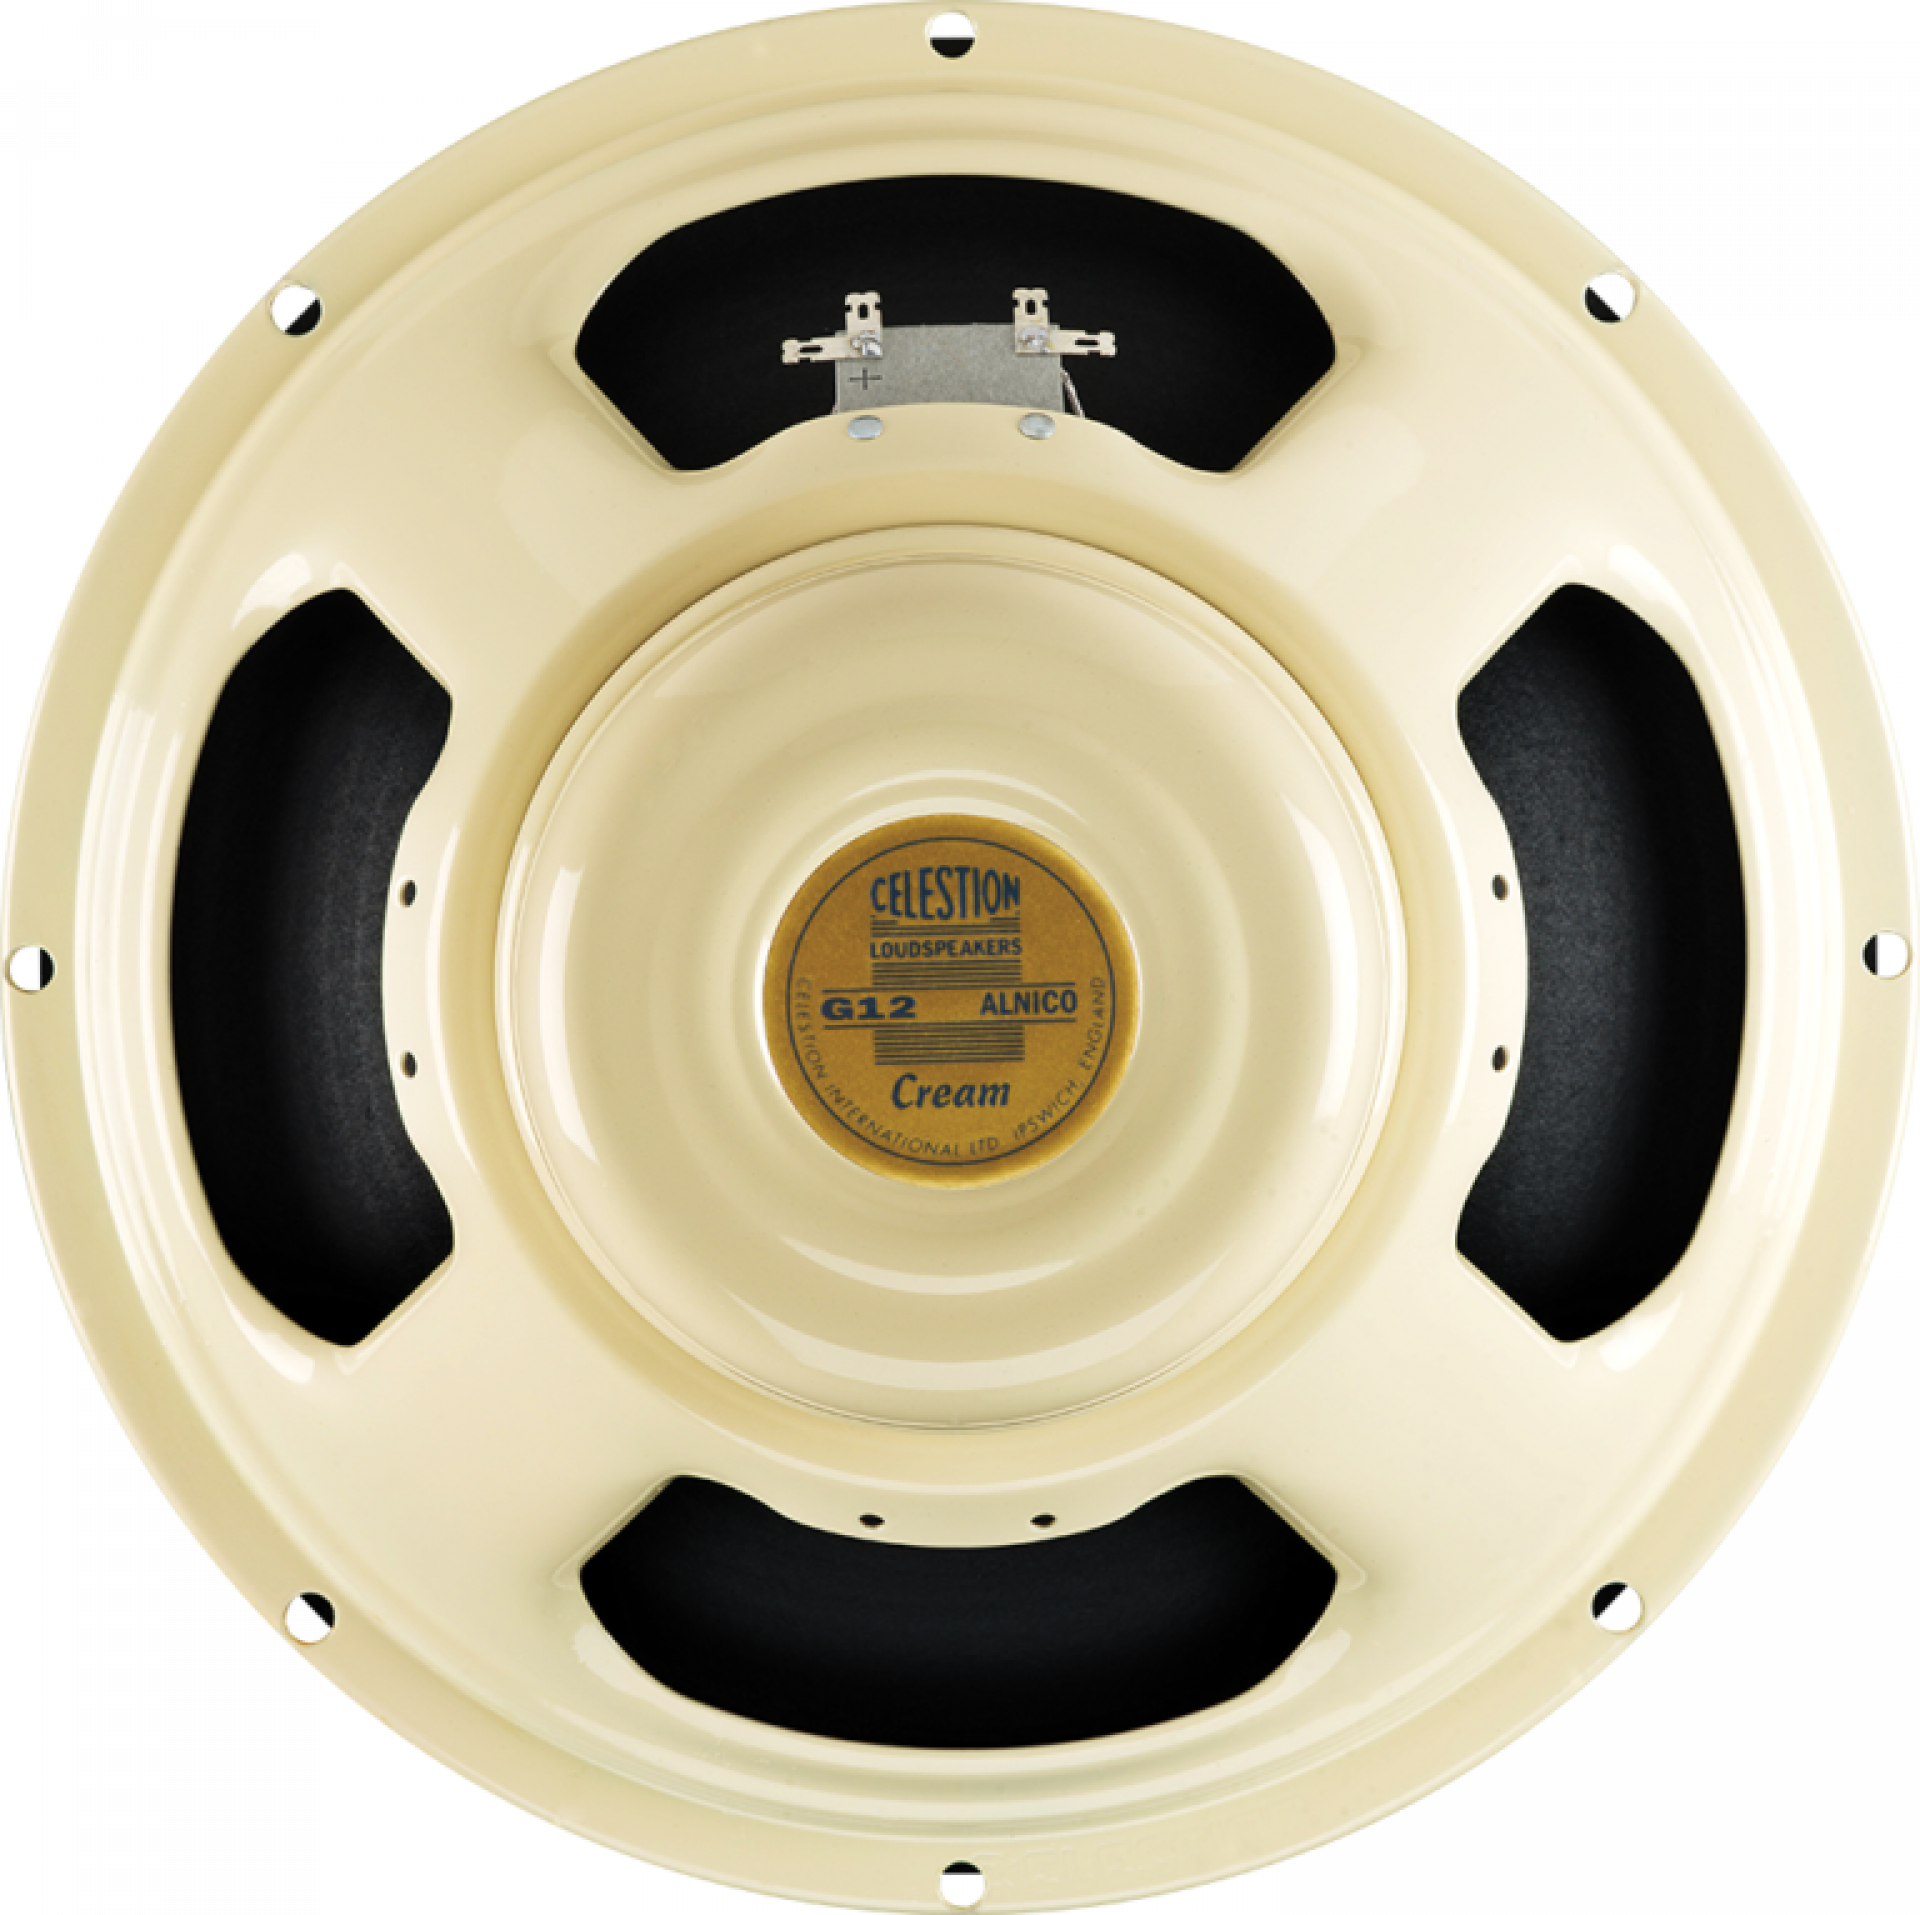 Celestion Cream 16ohm